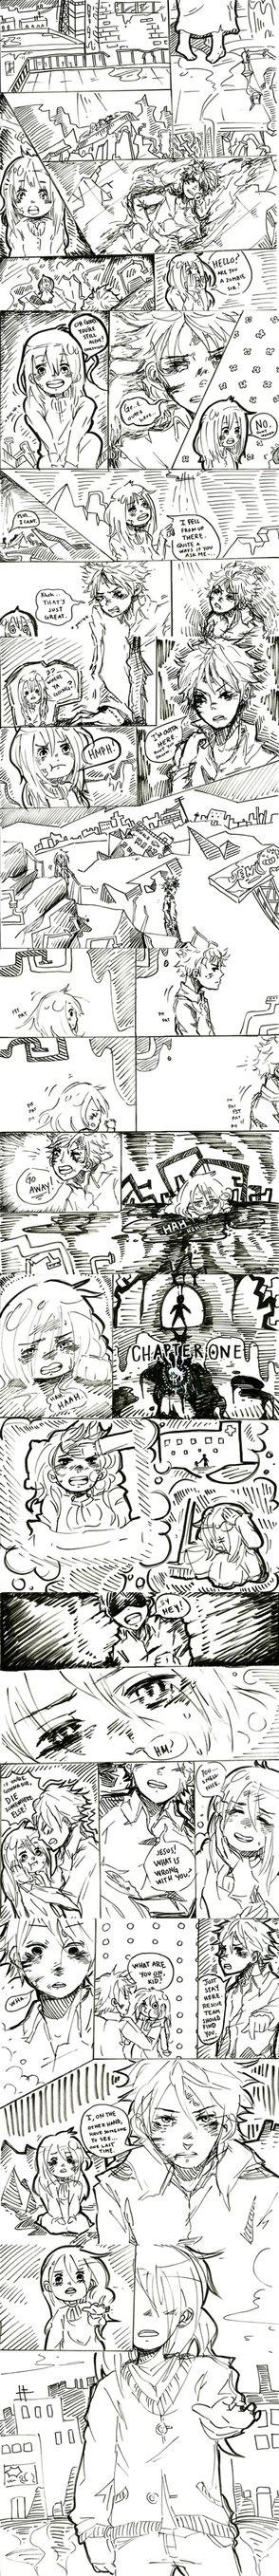 Sketch Comic by JubyPhonic